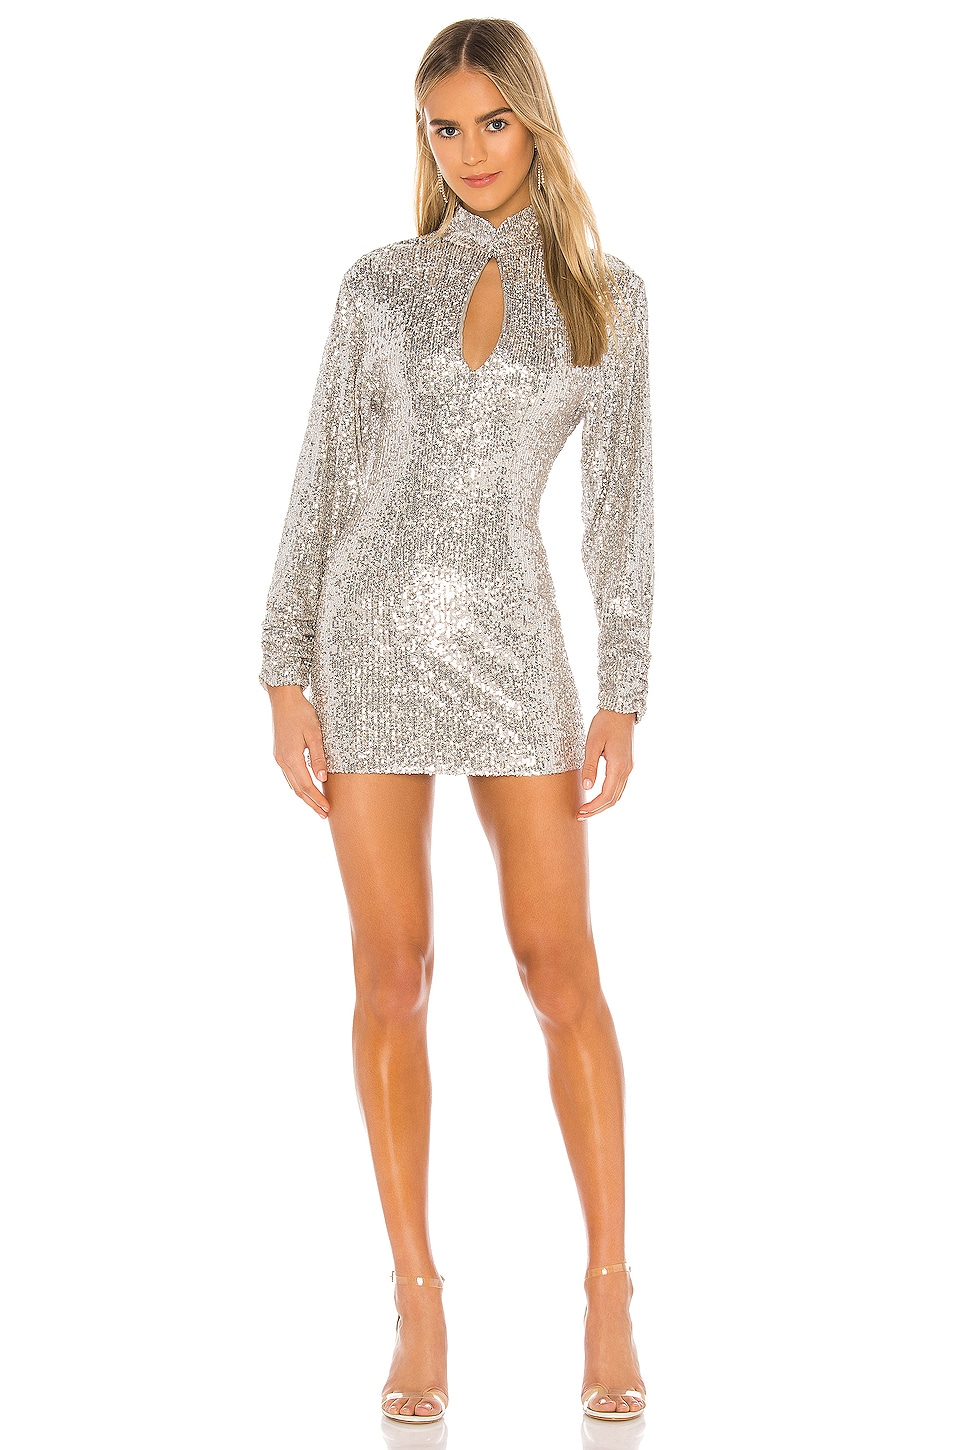 Ronny Kobo Lauper Dress in Silver